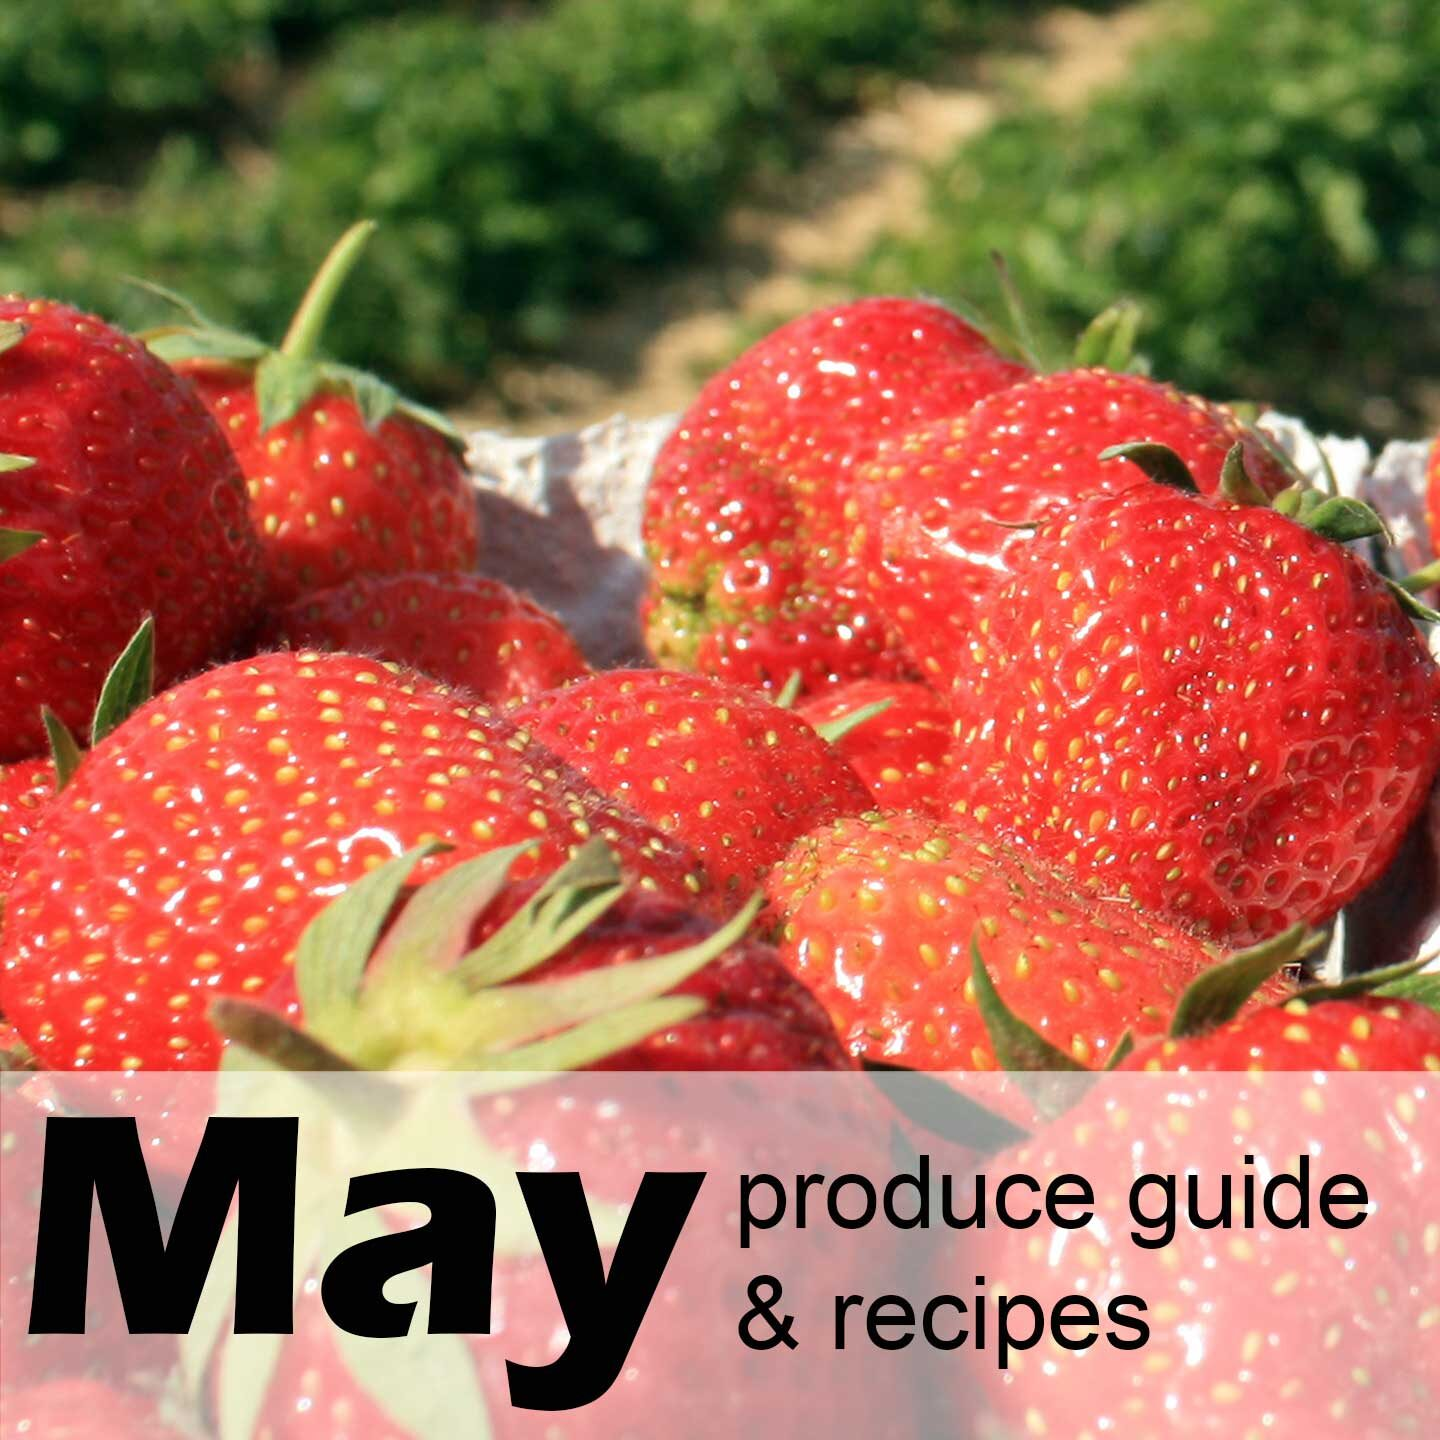 Strawberries in baskets on a farm, with text May produce guide & recipes